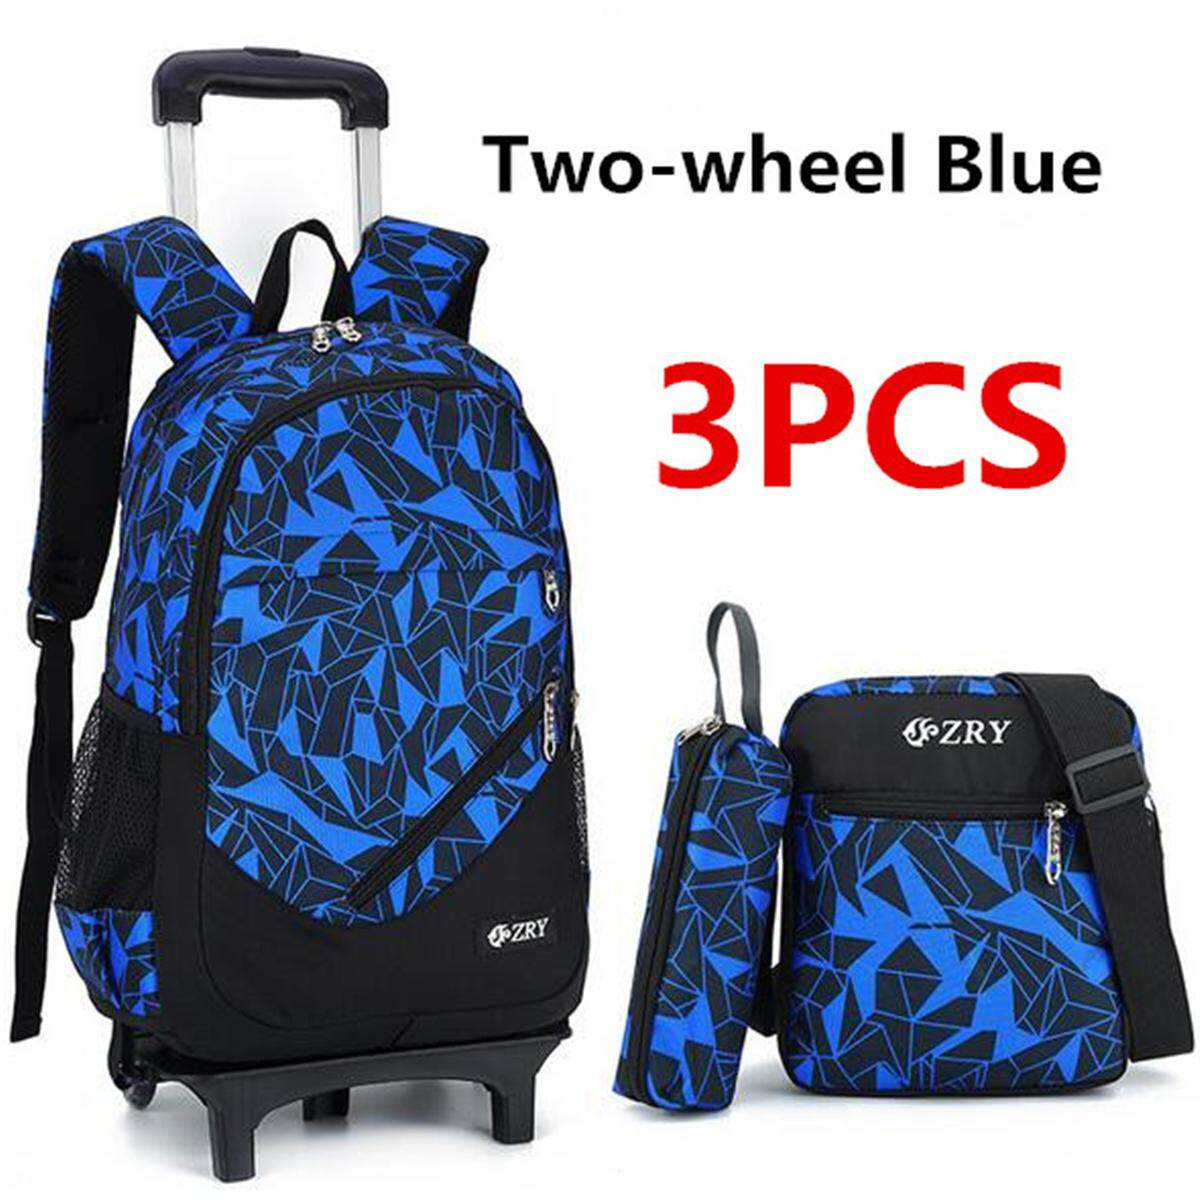 64039da553 3Pcs Kids Teenagers School Bags Boy Removable Trolley Backpack Bag With  Wheels  2 wheel